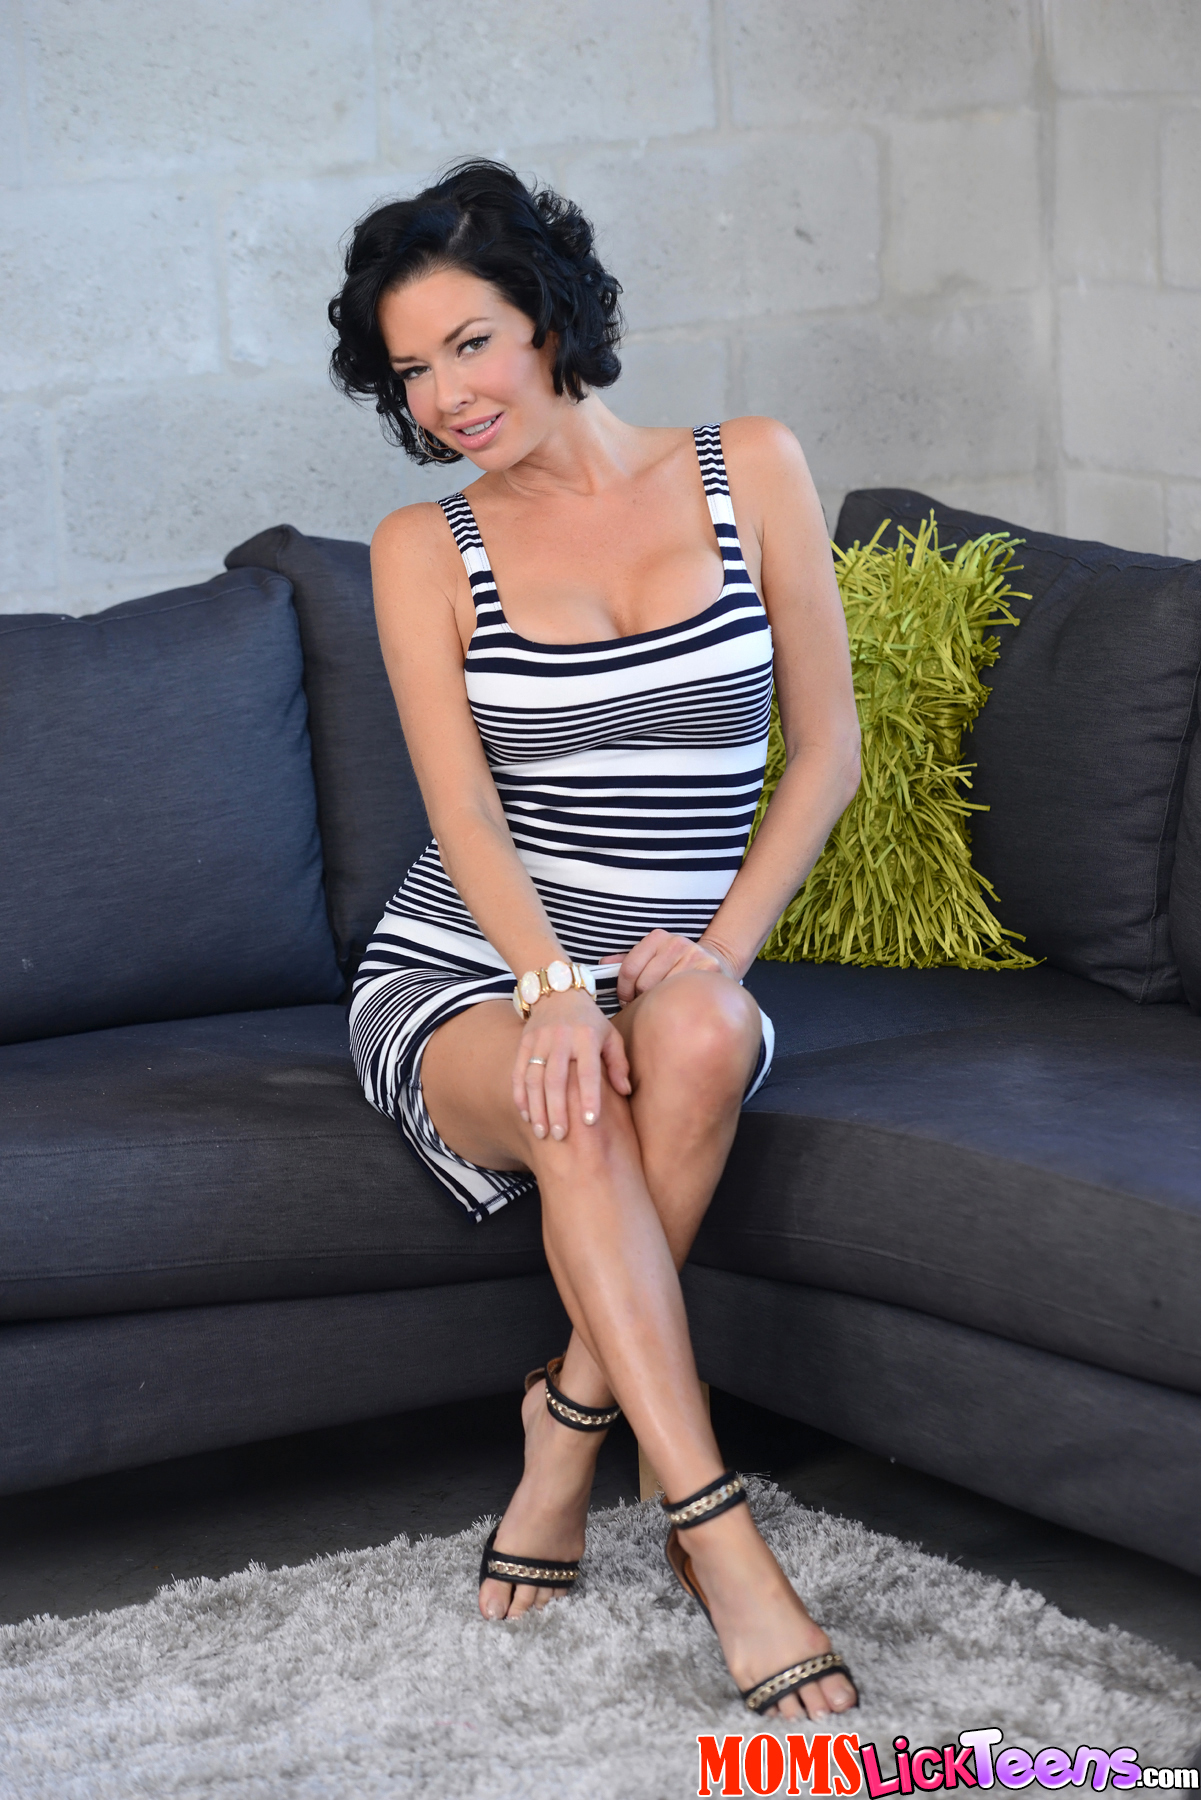 veronica avluv website